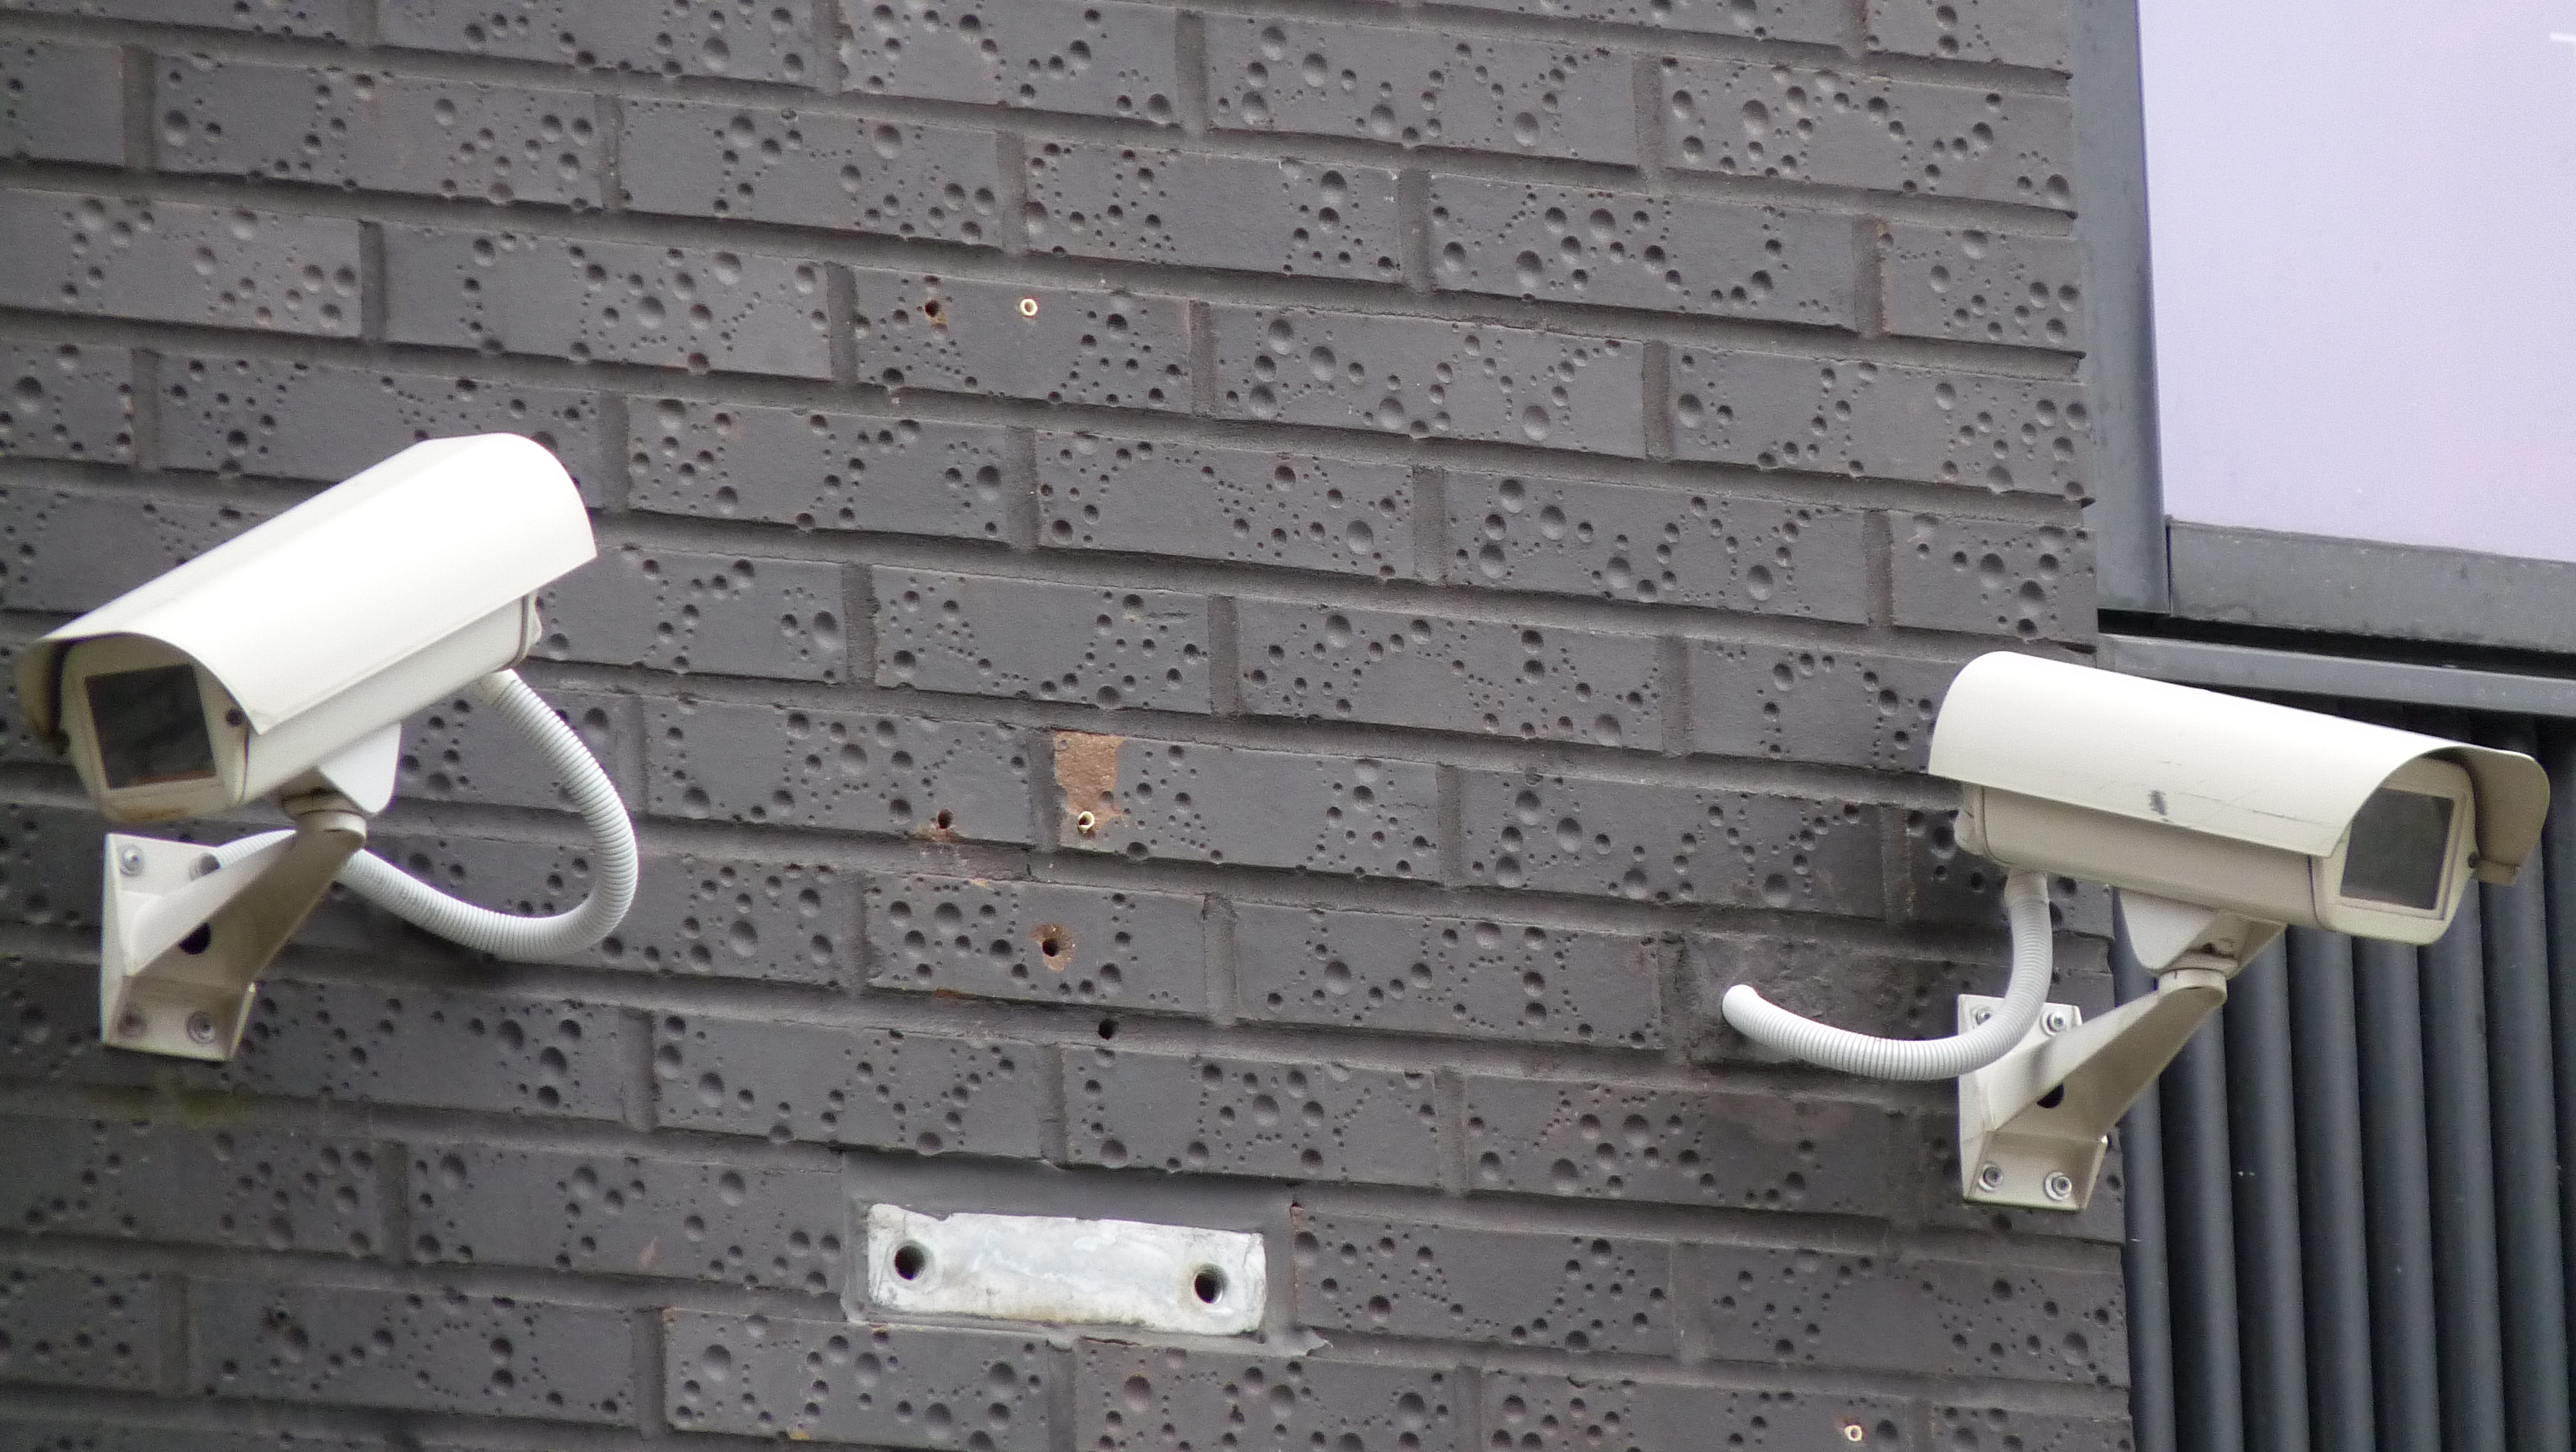 Cameras mounted on a wall.